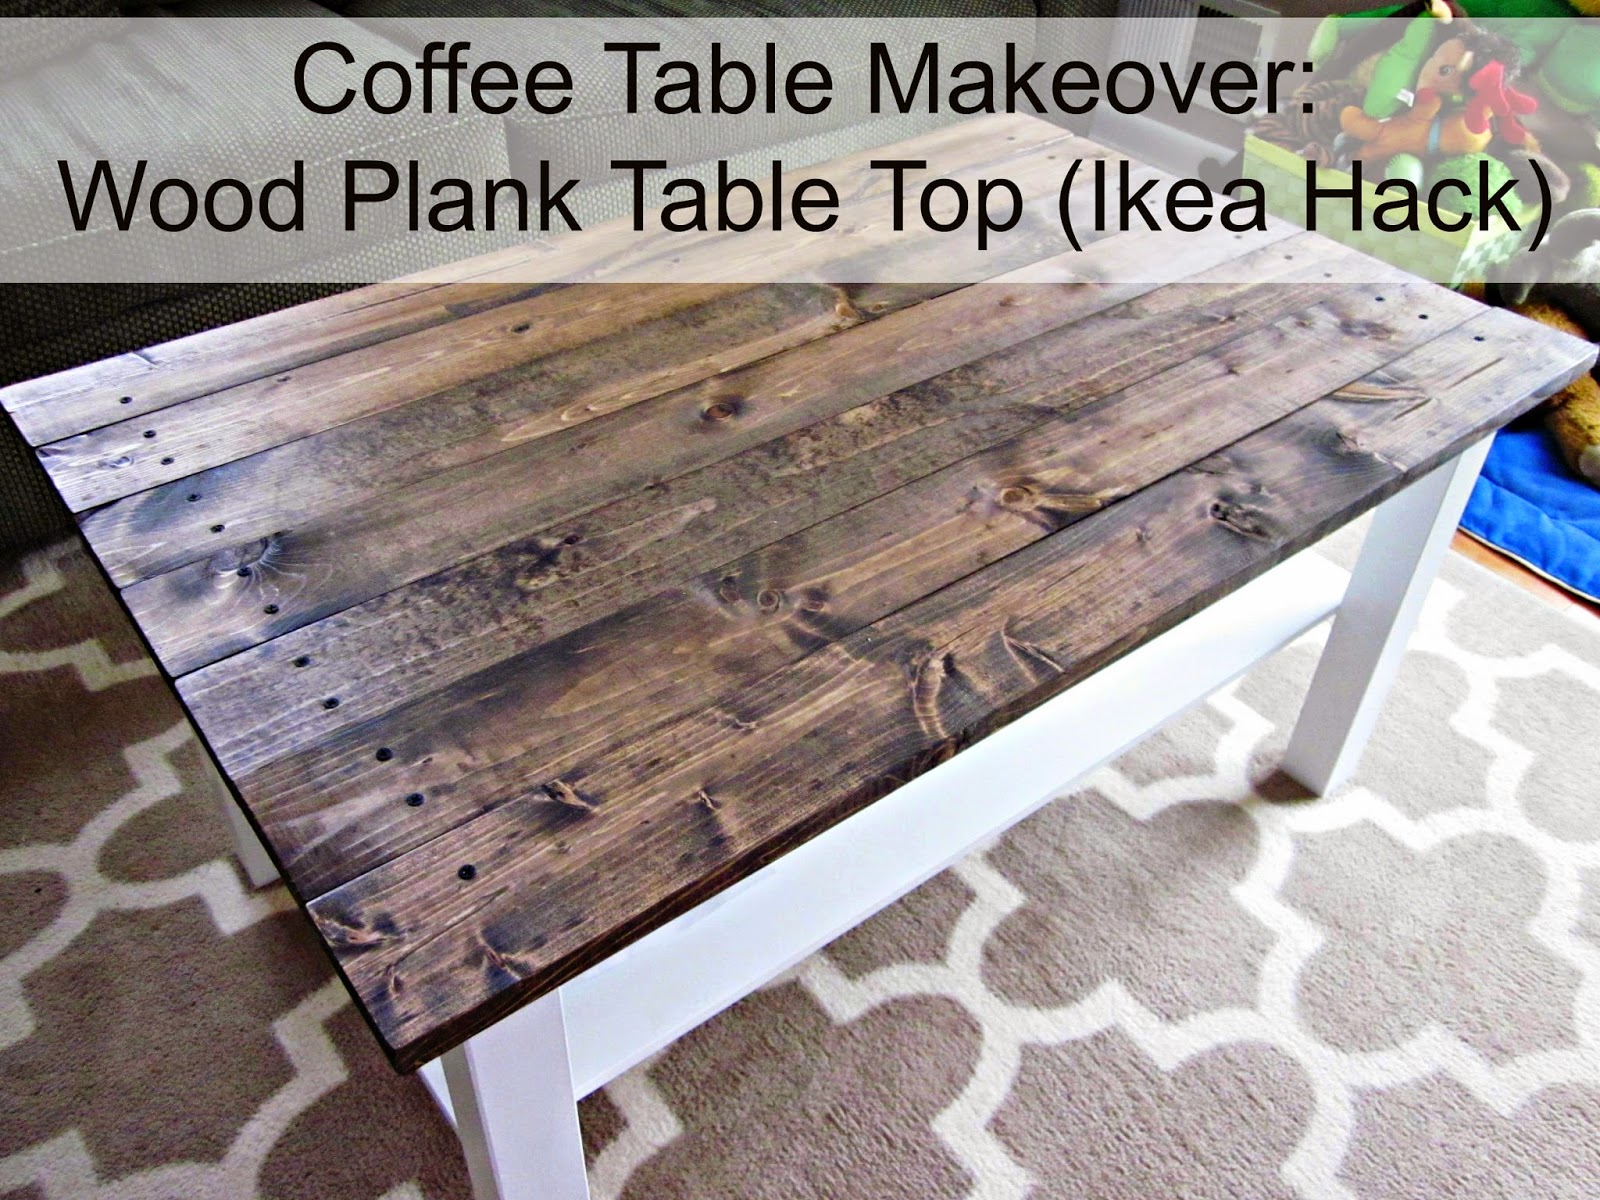 It s A Long Story  Coffee Table Makeover  Wood Plank Table Top  Ikea Hack. It s A Long Story  Coffee Table Makeover  Wood Plank Table Top